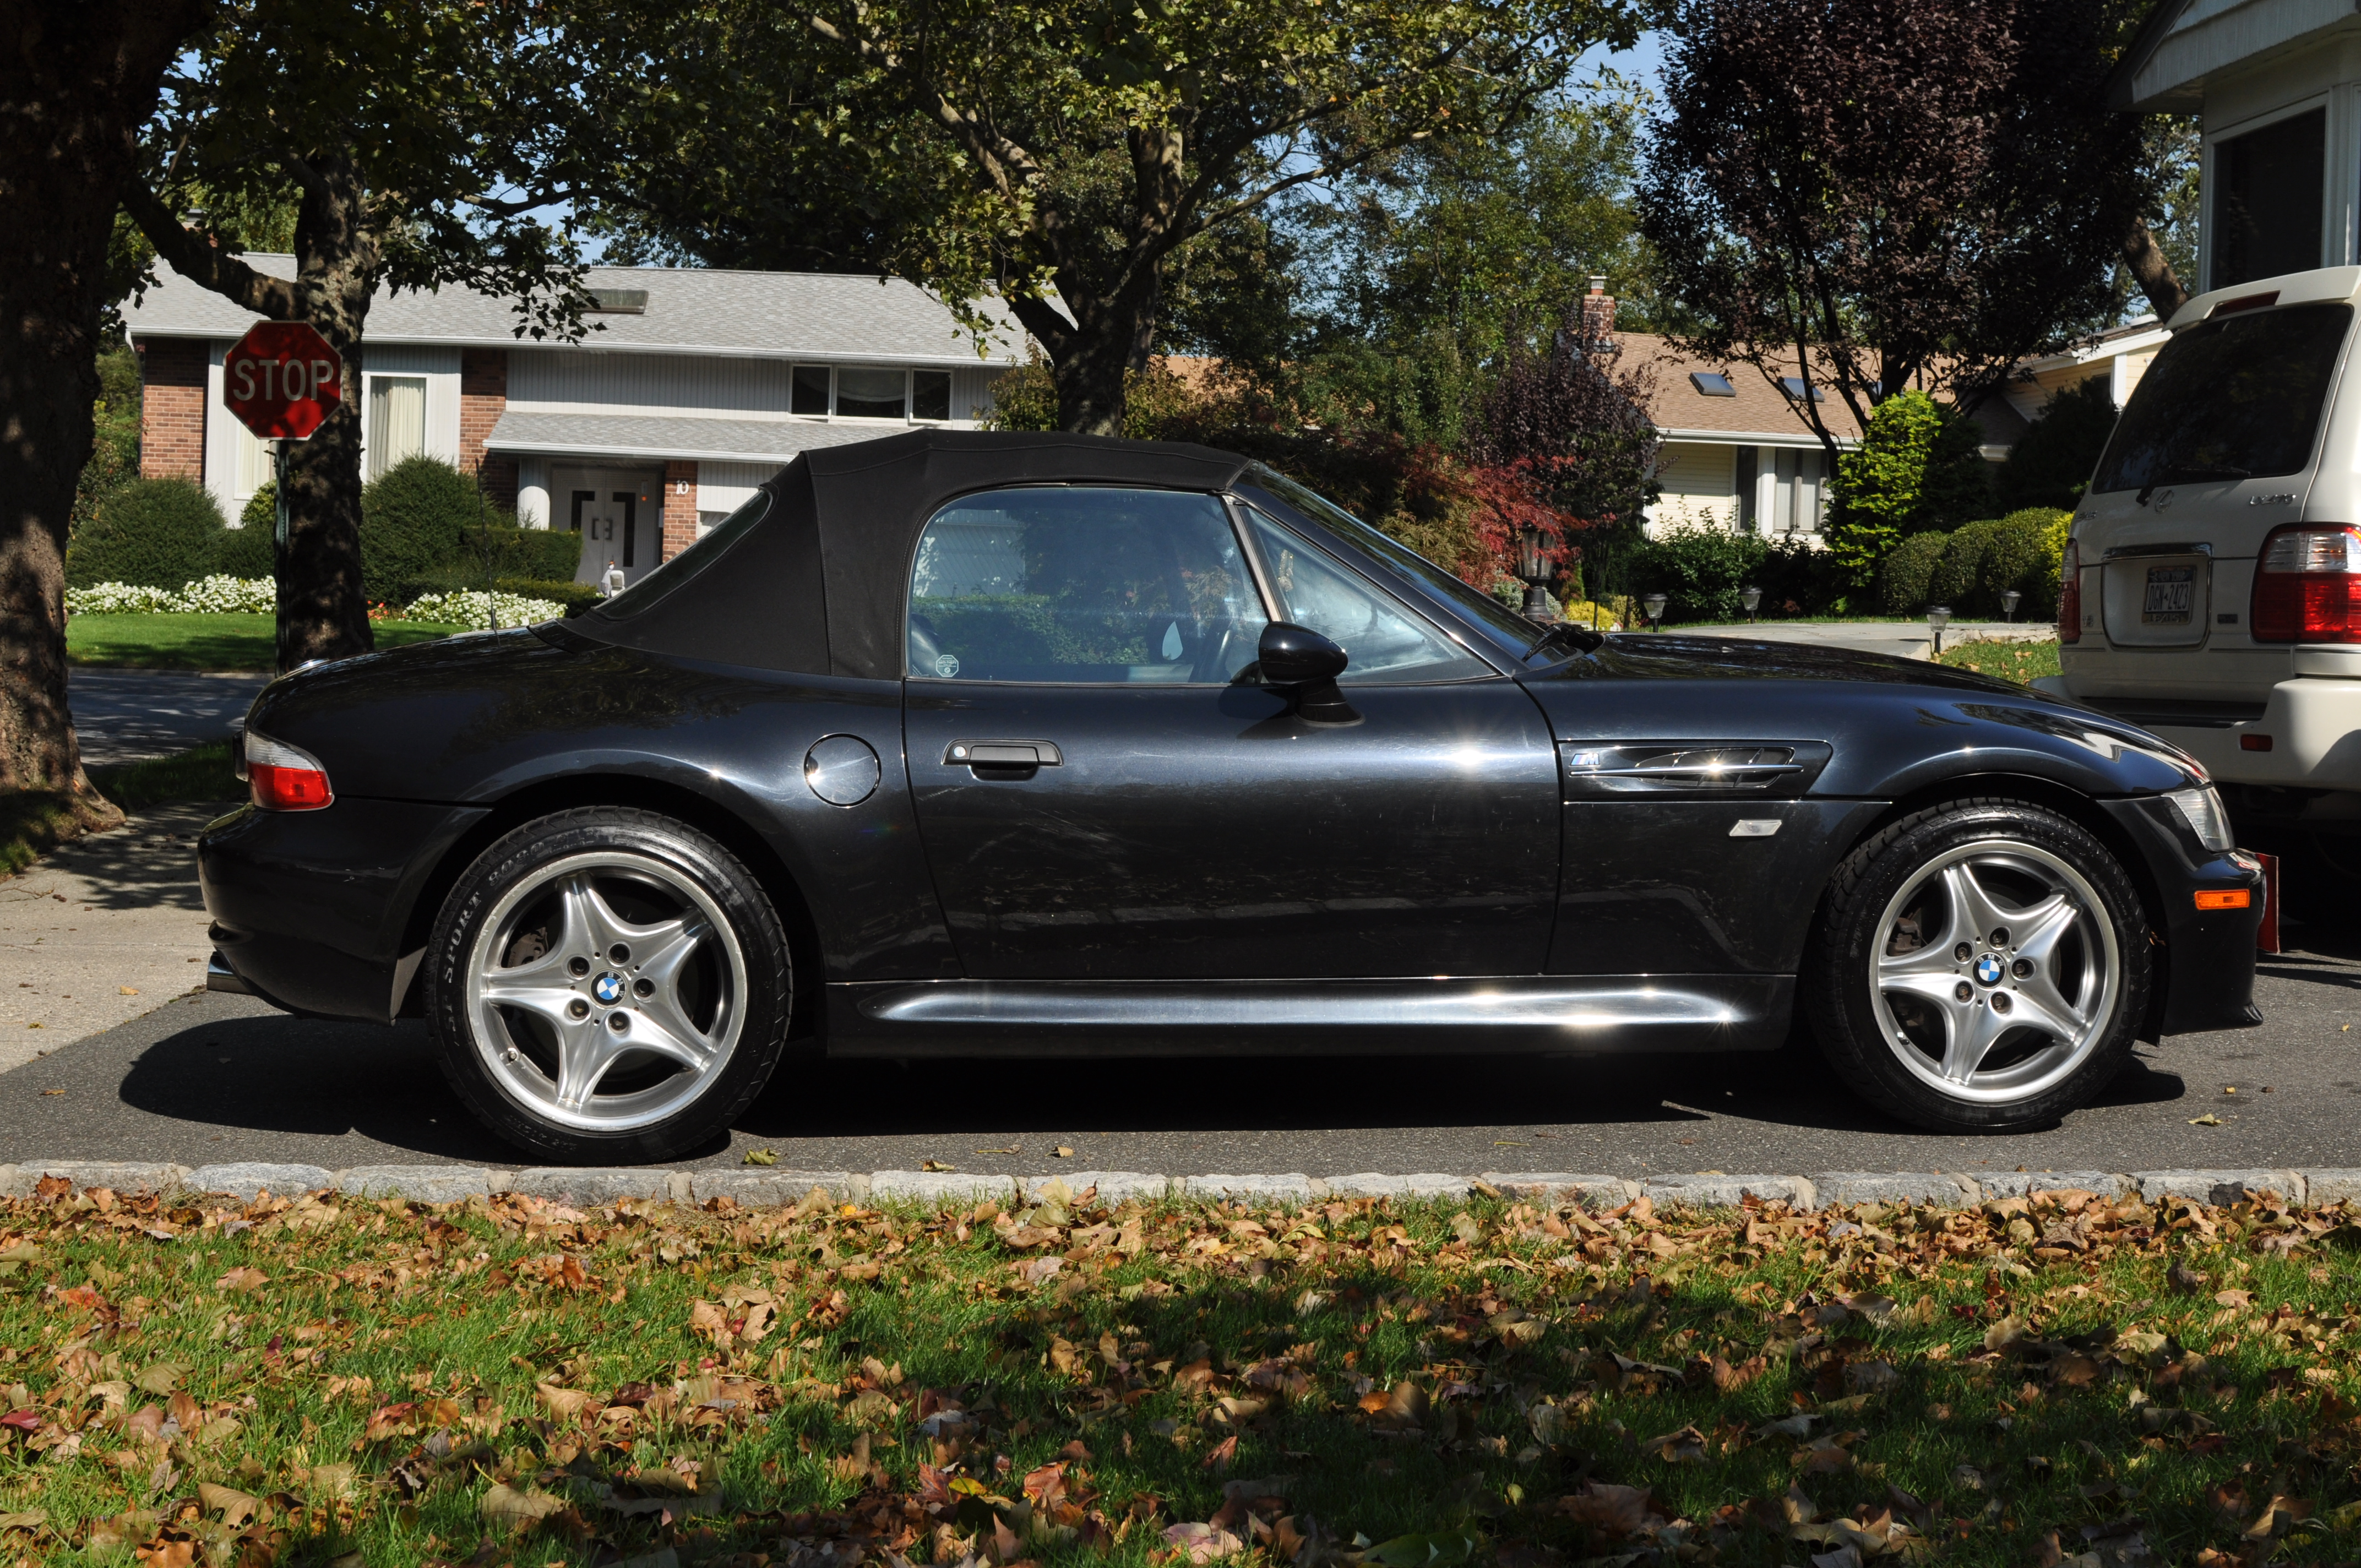 M For Sale Z M Roadster For Sale Asking Included - 1999 bmw z3 m roadster